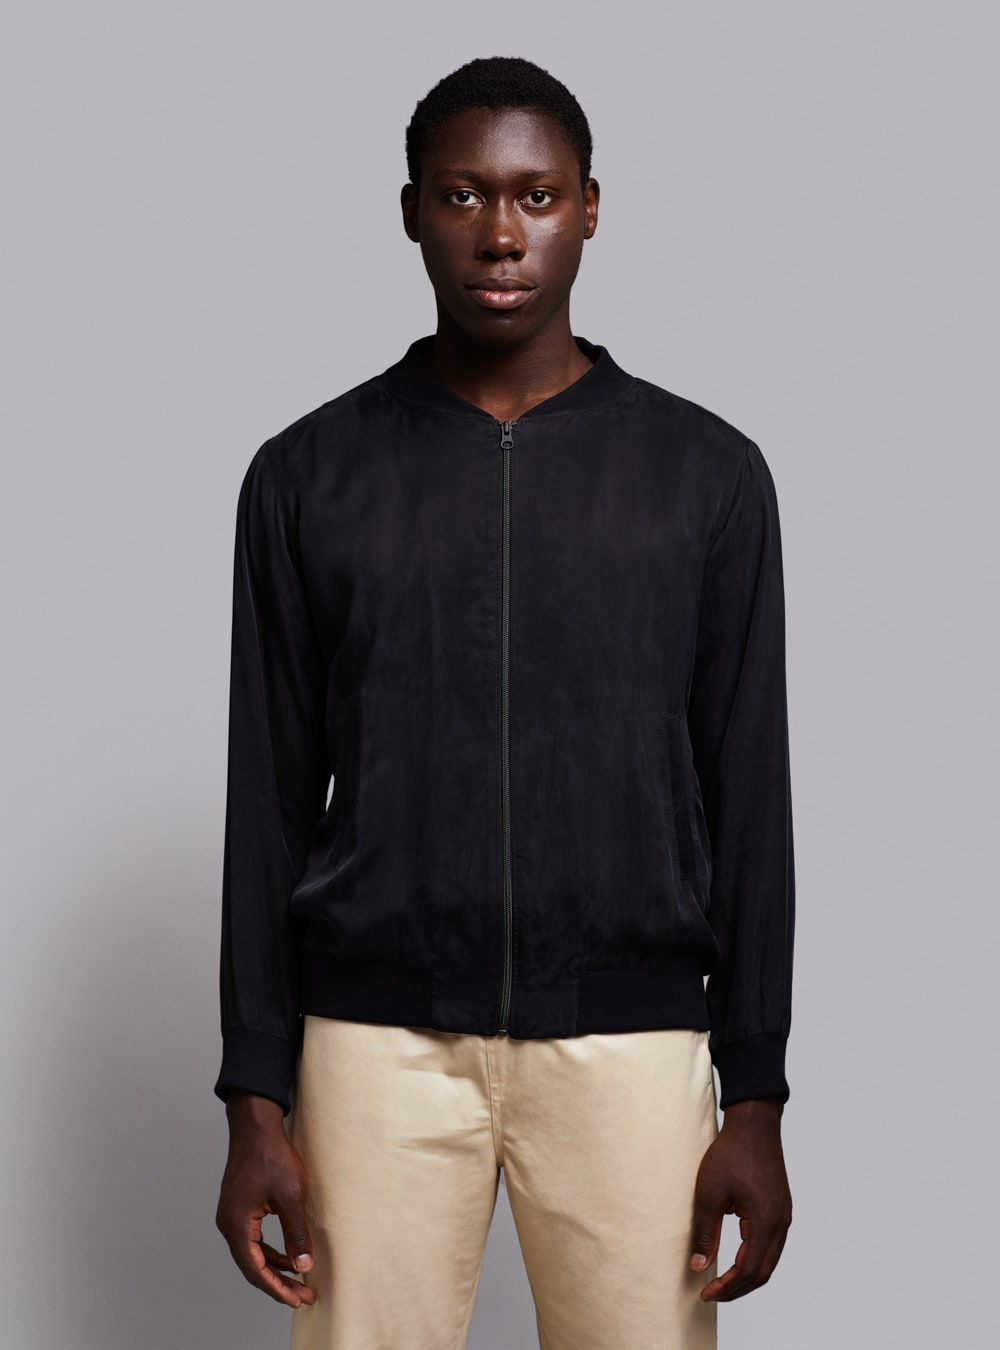 Cupro bomber jacket (black) in vegan silk, made in Portugal by wetheknot.